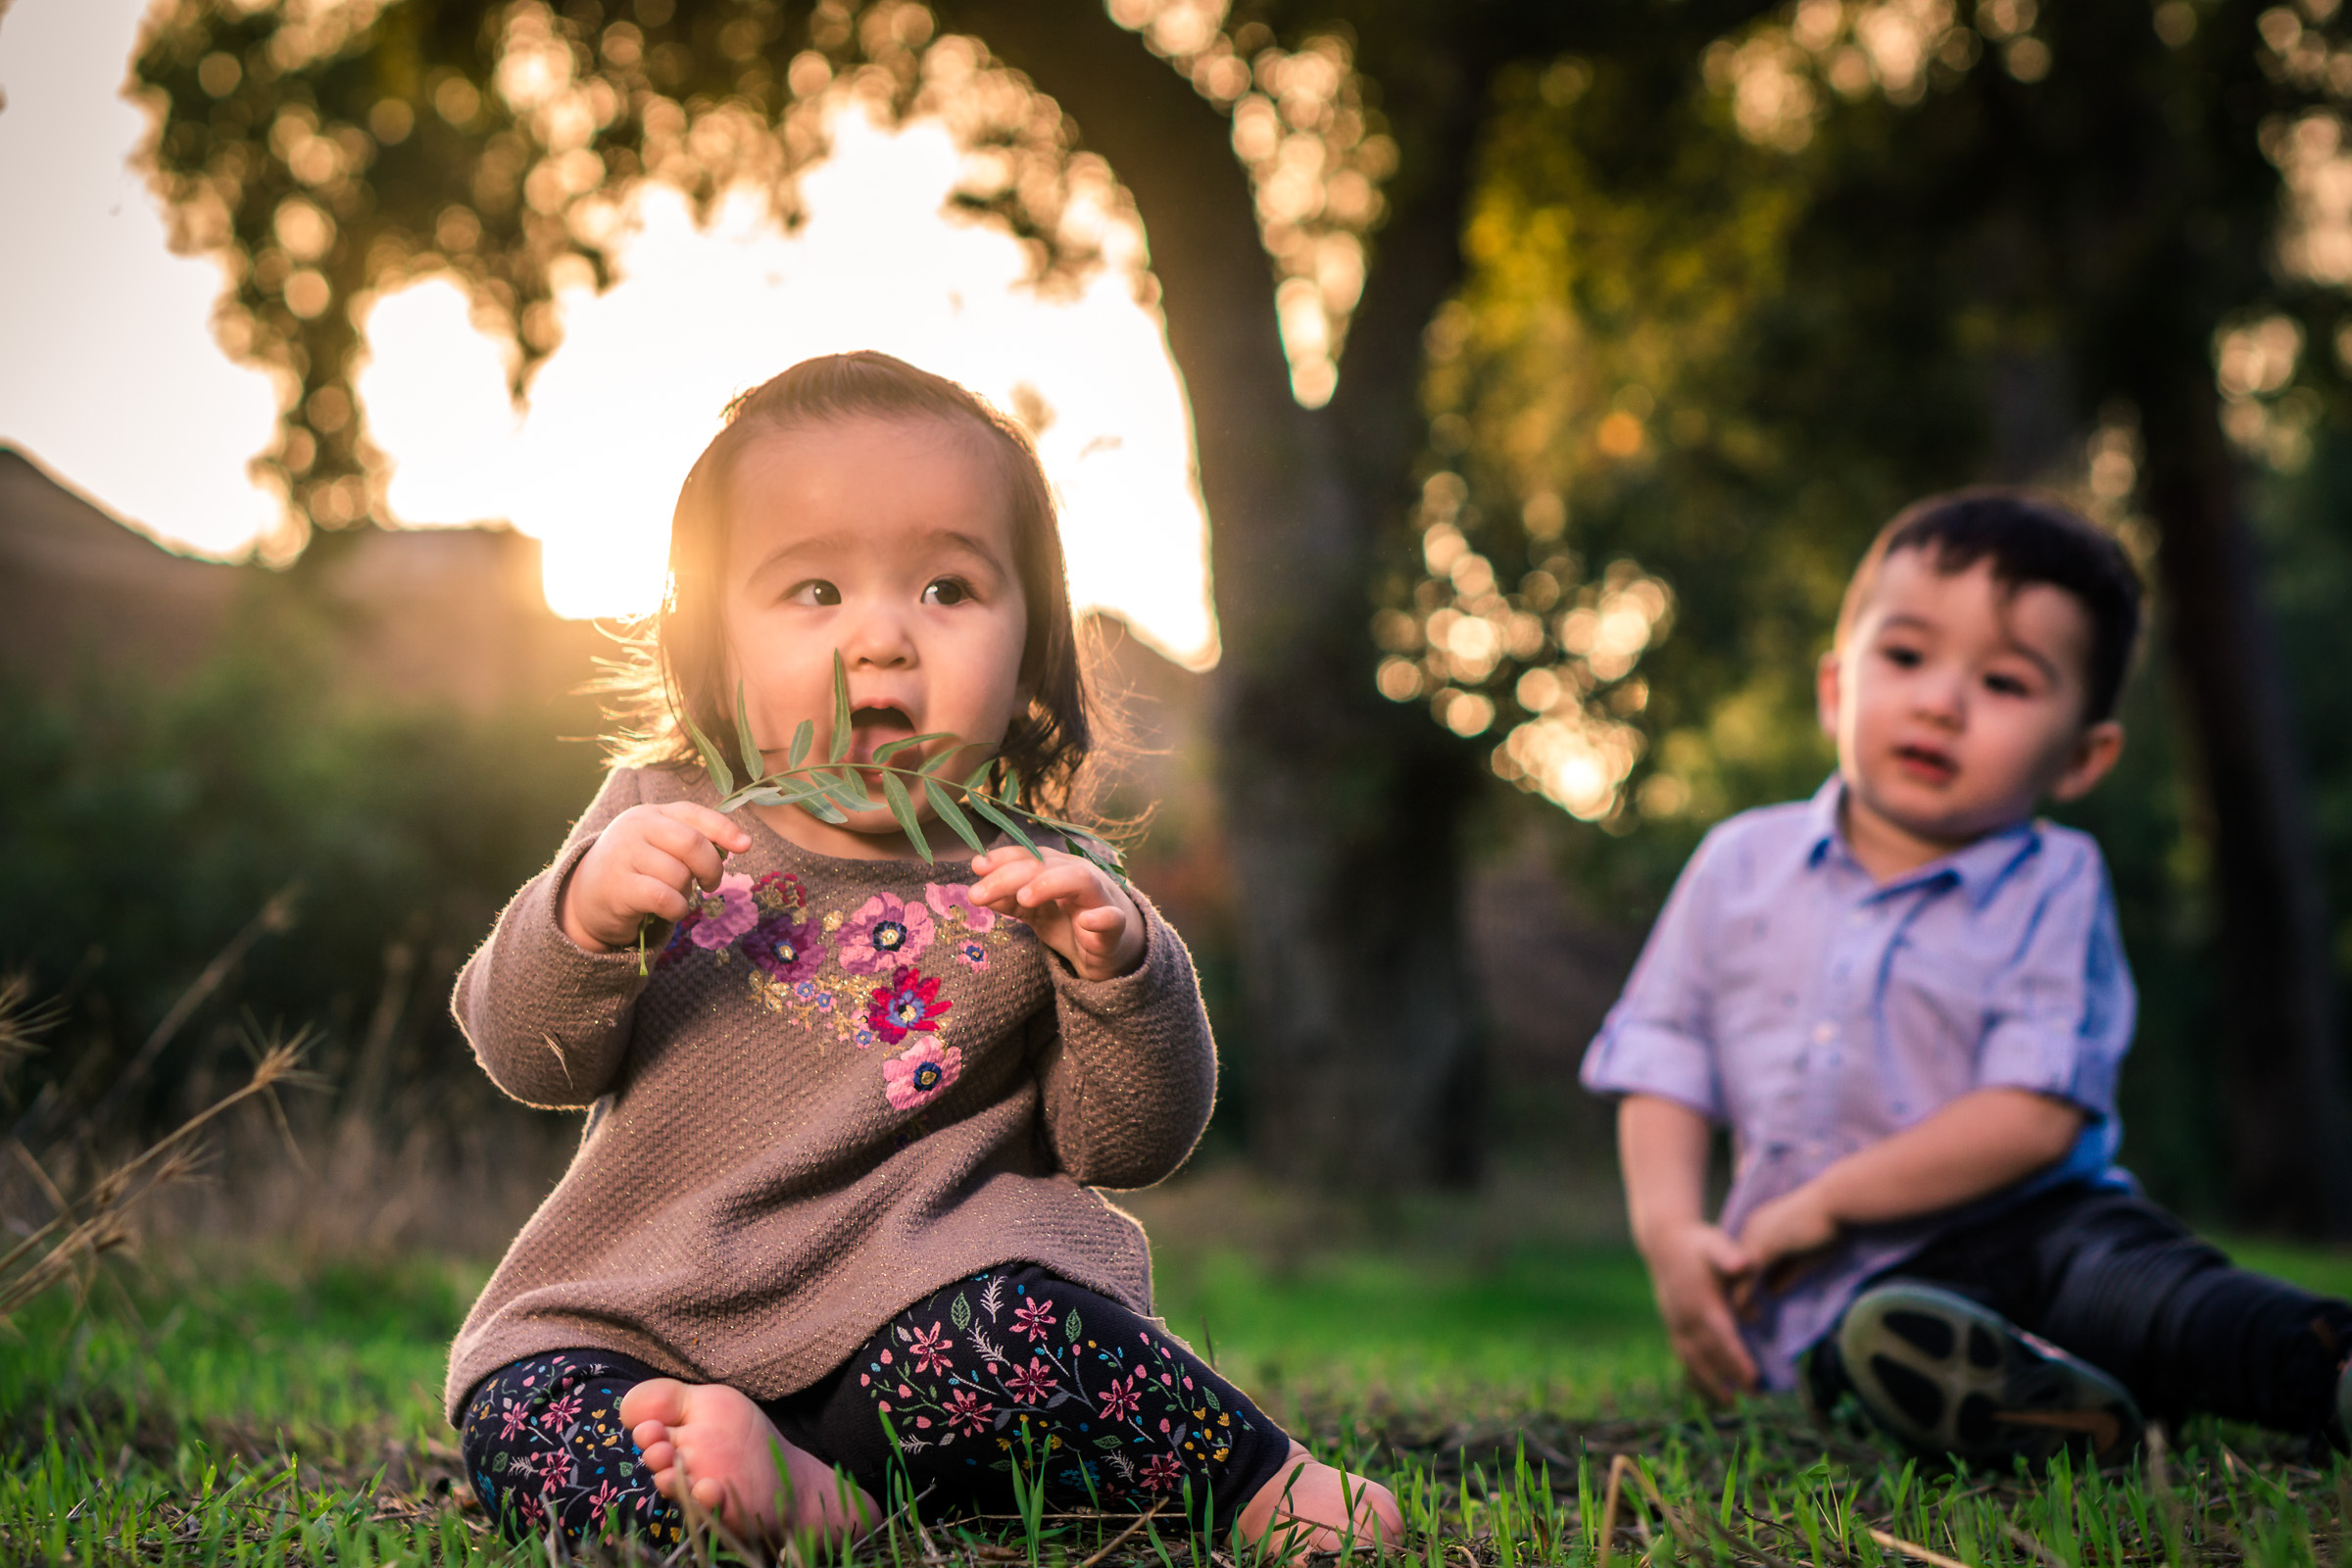 Portrait of a cute Little baby girl eating a leaf and playing in the grass with her brother on the Juanita Cooke Trail in Fullerton during a family portrait session